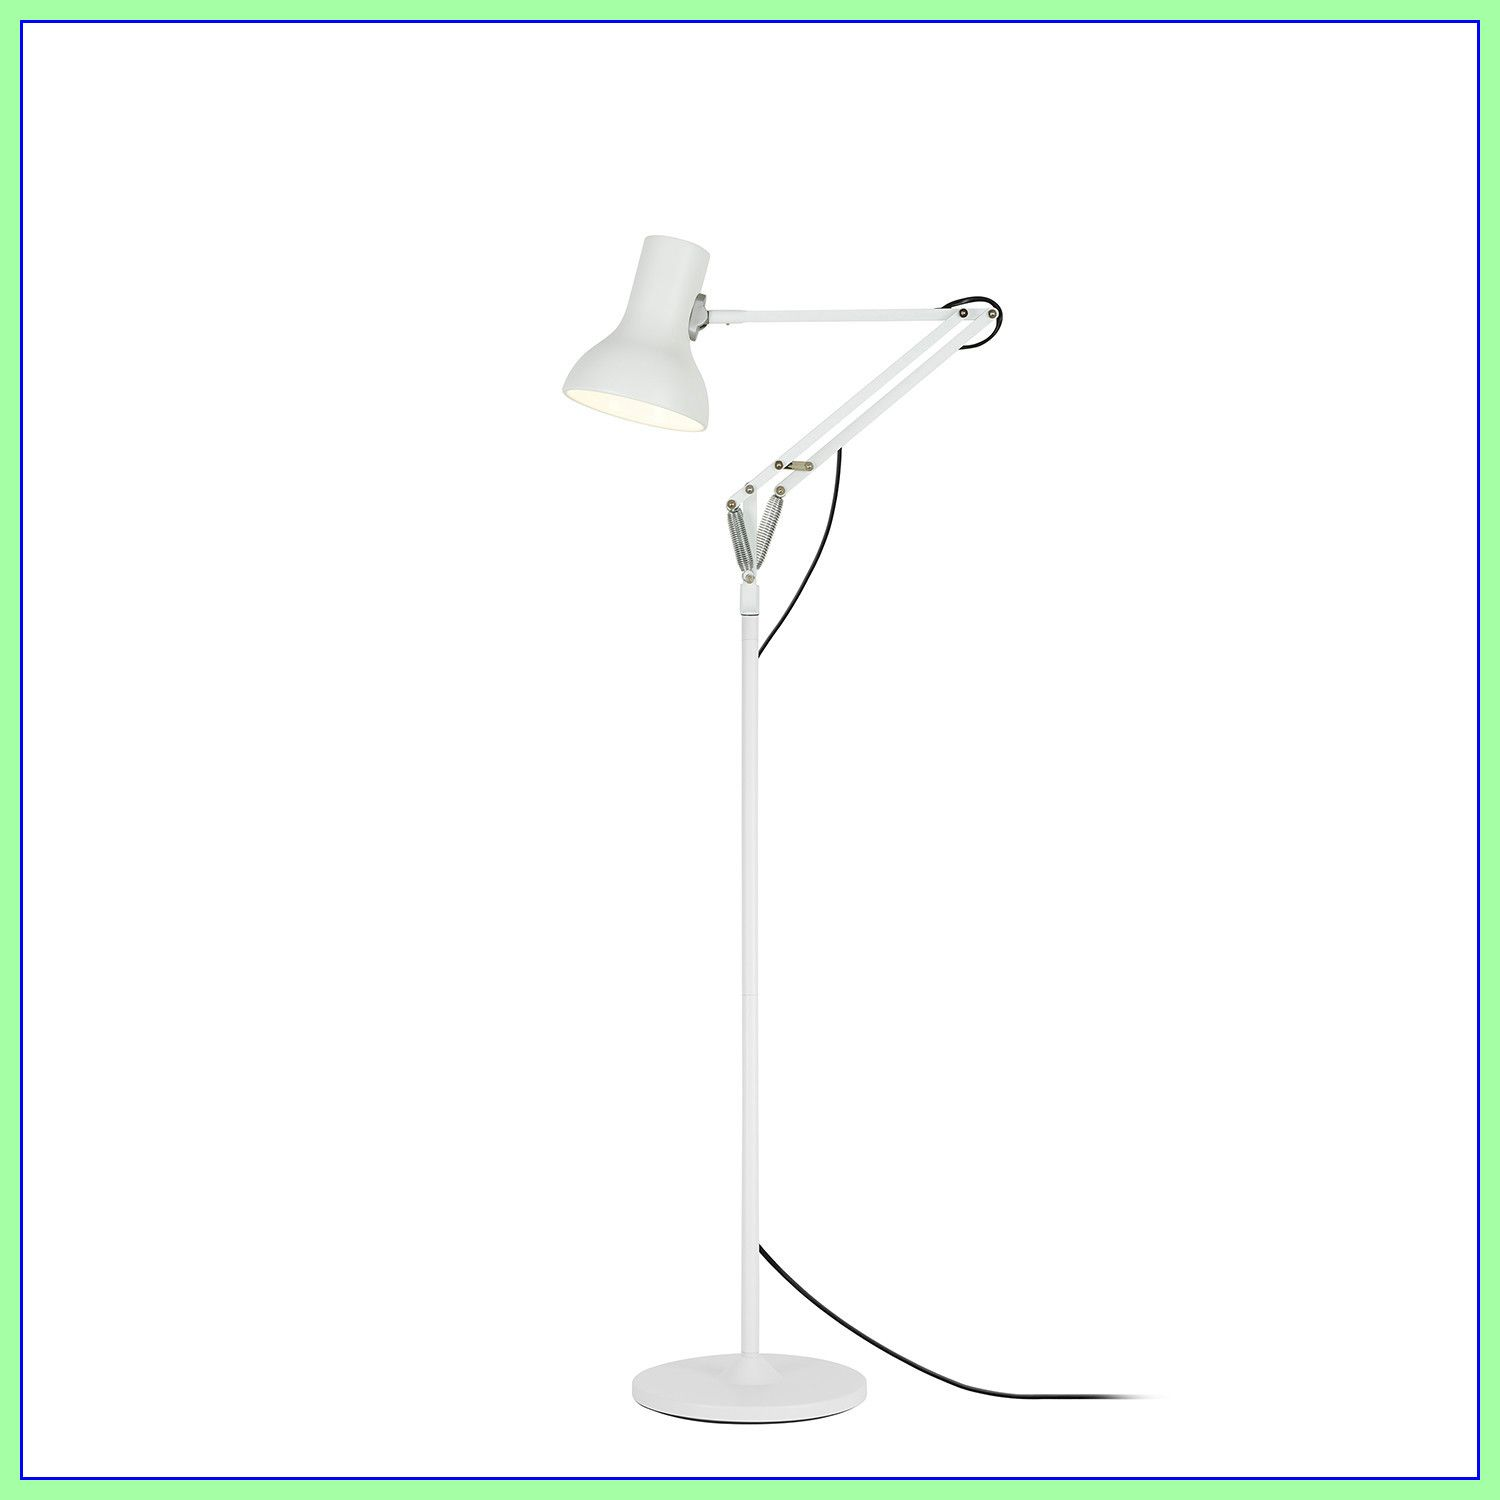 143 Reference Of Touch Lamps Amazon Prime In 2020 Touch Lamp Lamp Barn Door Installation